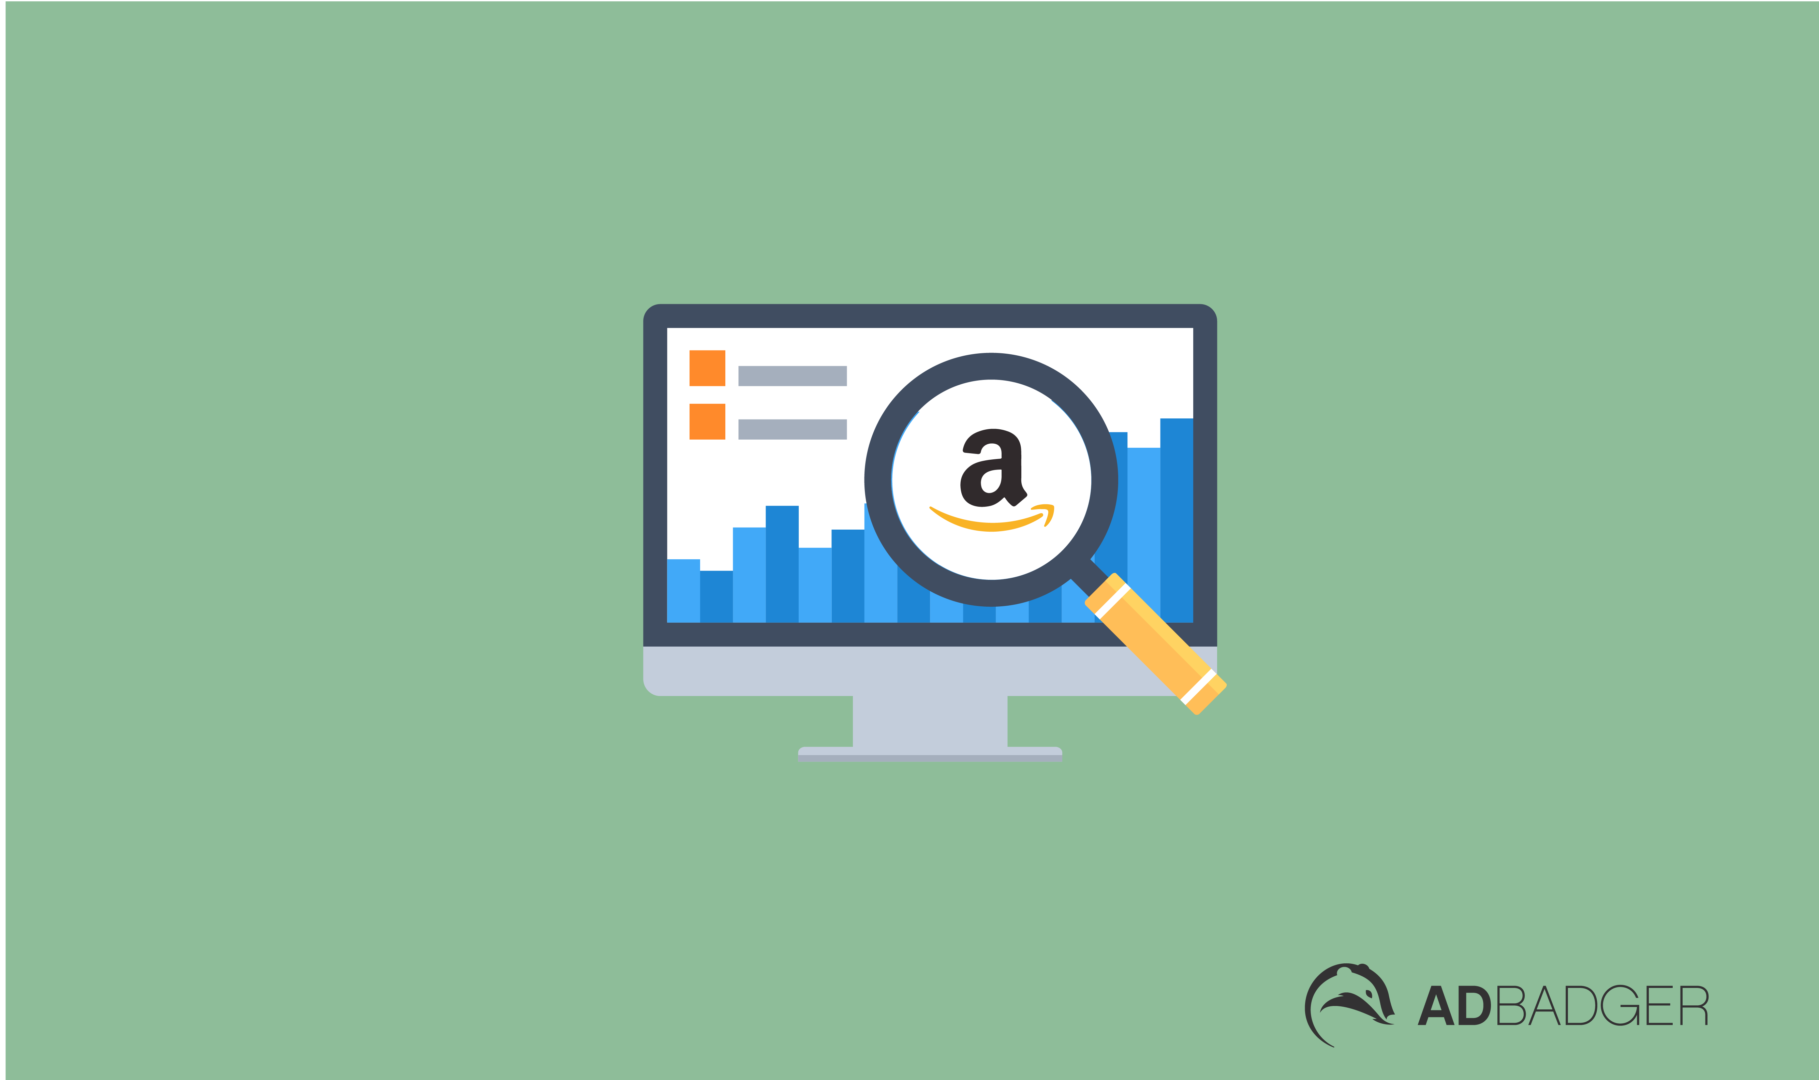 amazon-ppc-stats-conversion-rates-cpc-acos